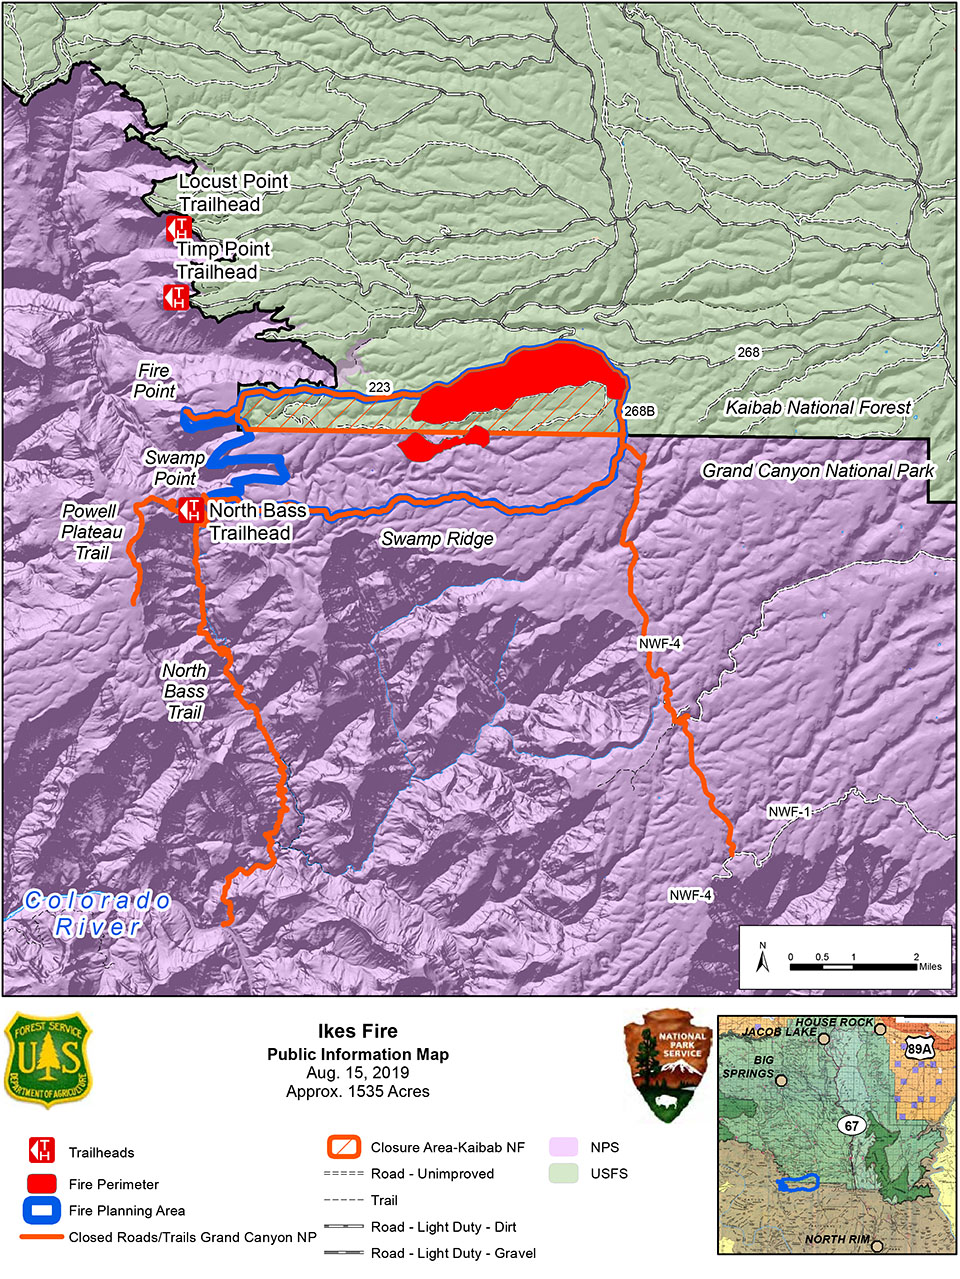 Map of the Ikes Fire planning area, with the areas that have burned shown in red. Closed roads and trails are show with orange lines.